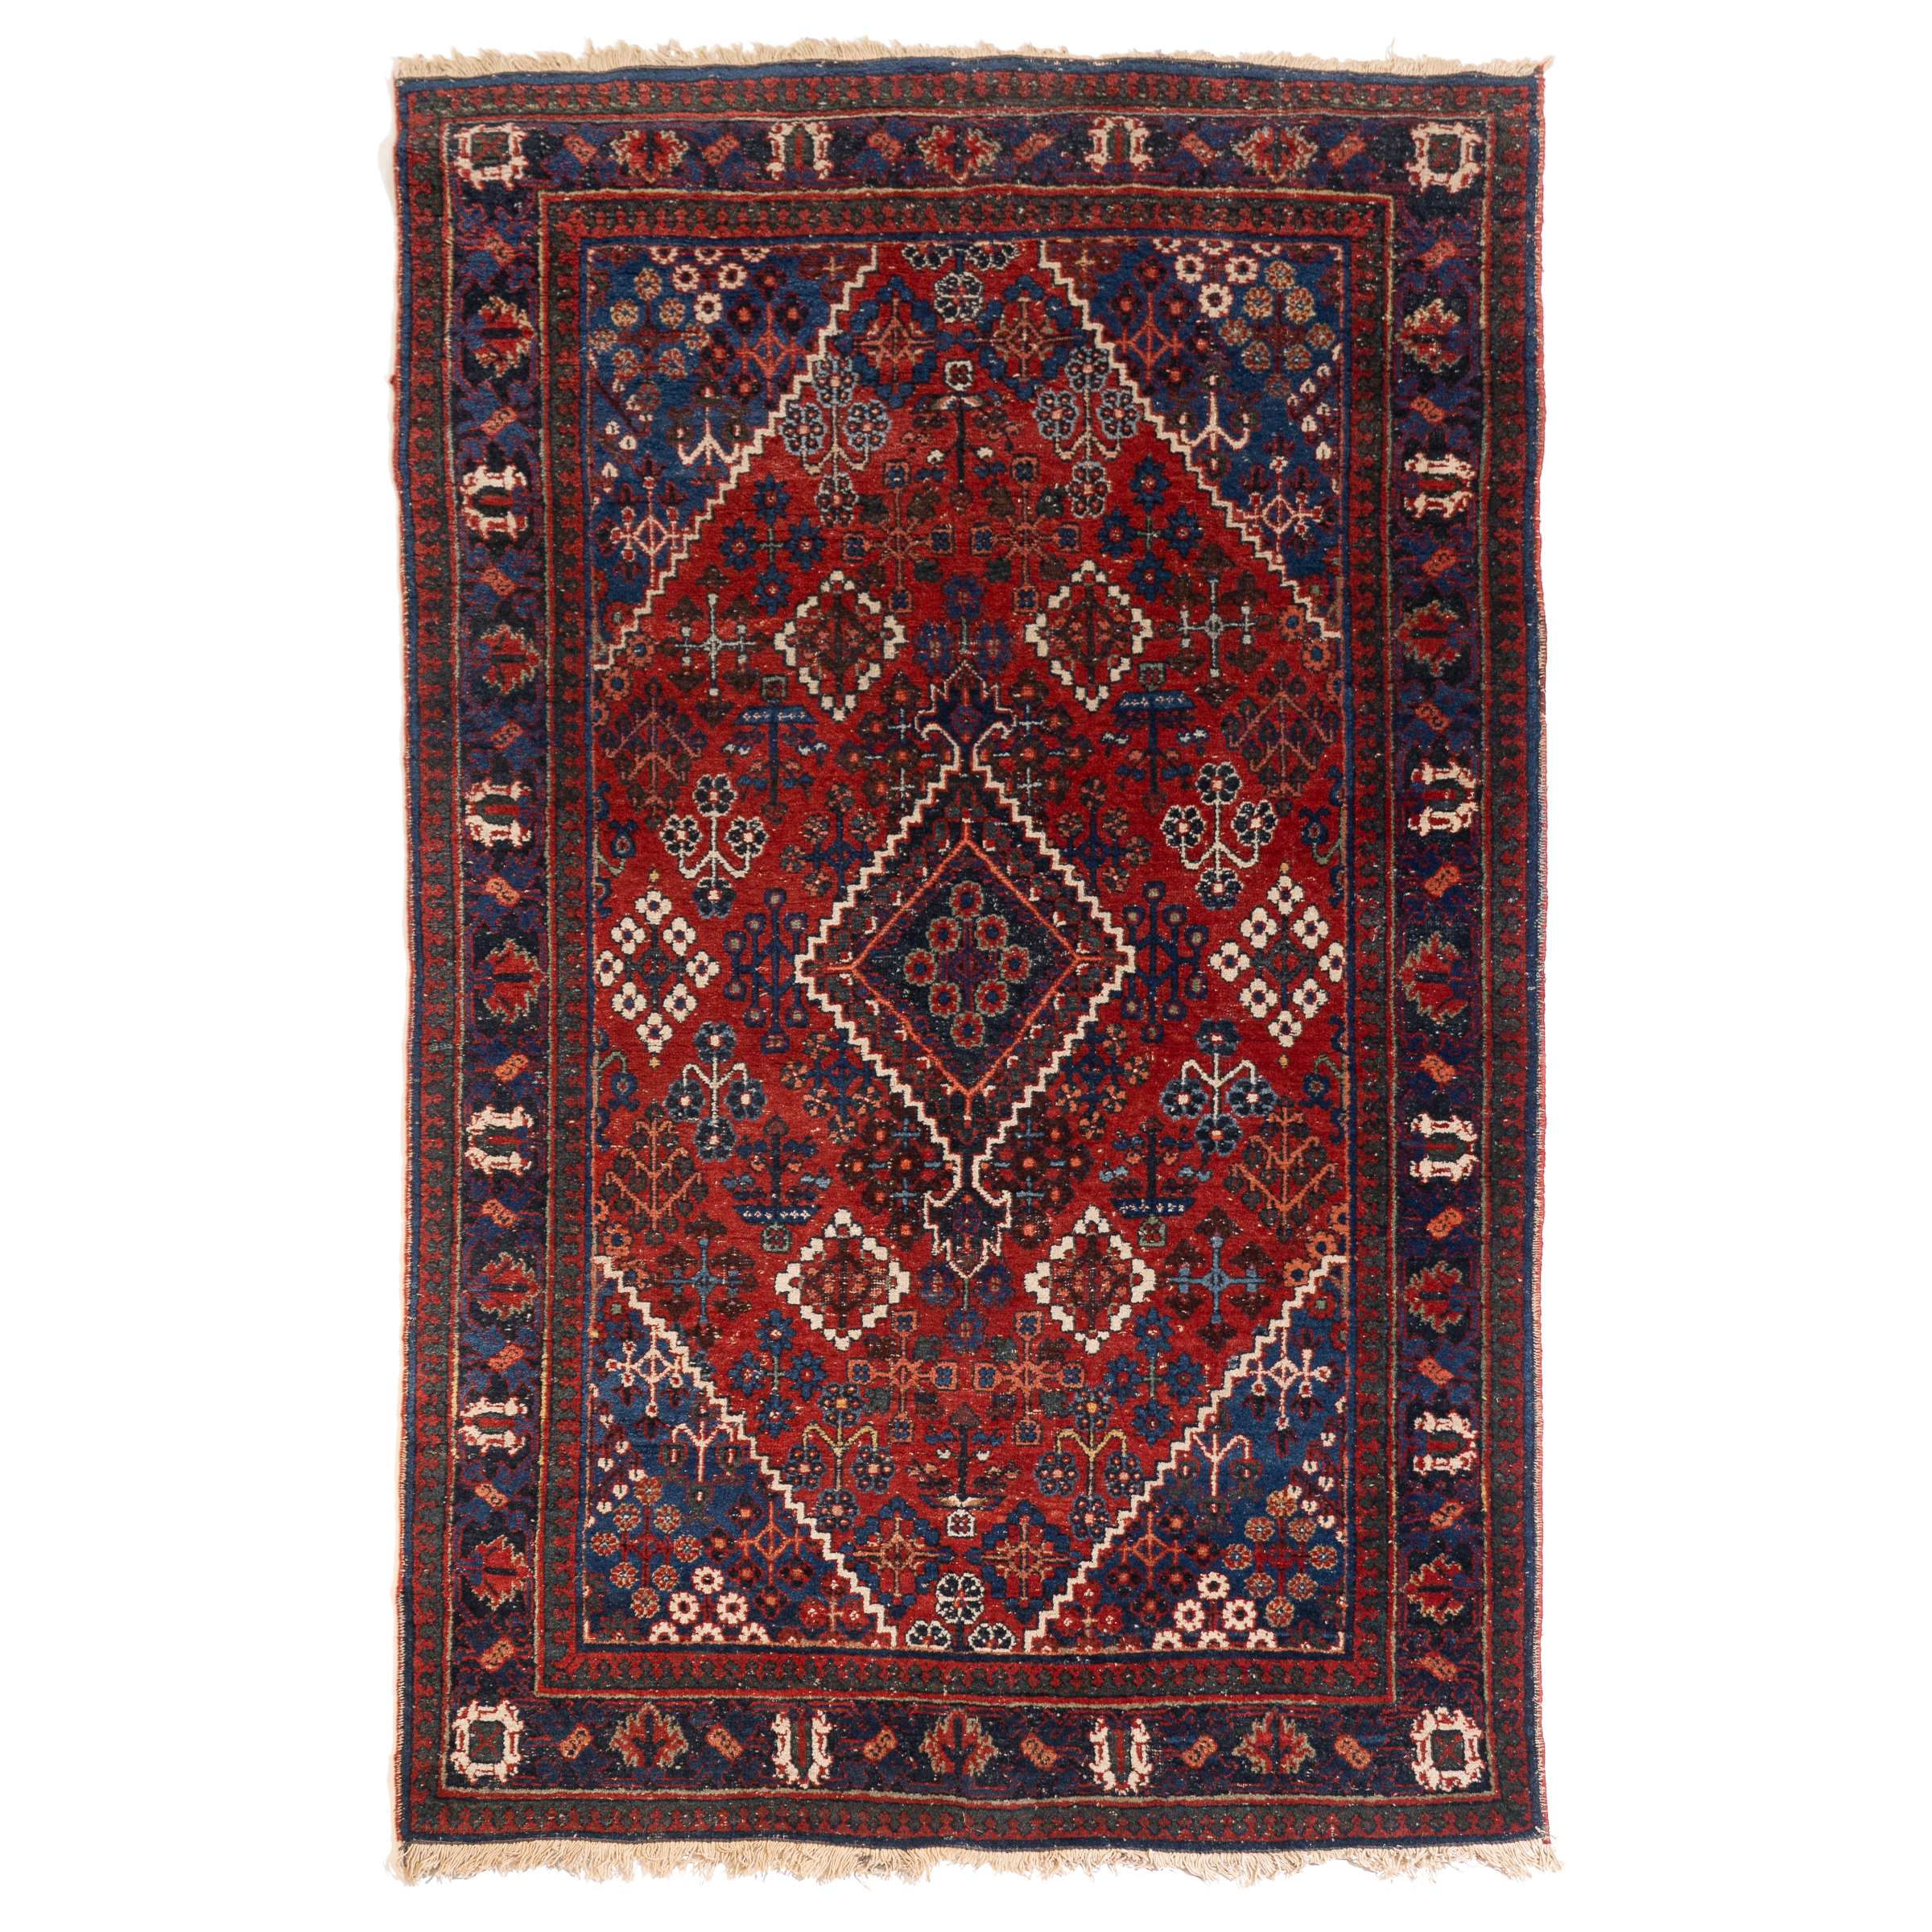 Shiraz Rug, Persian, mid 20th century